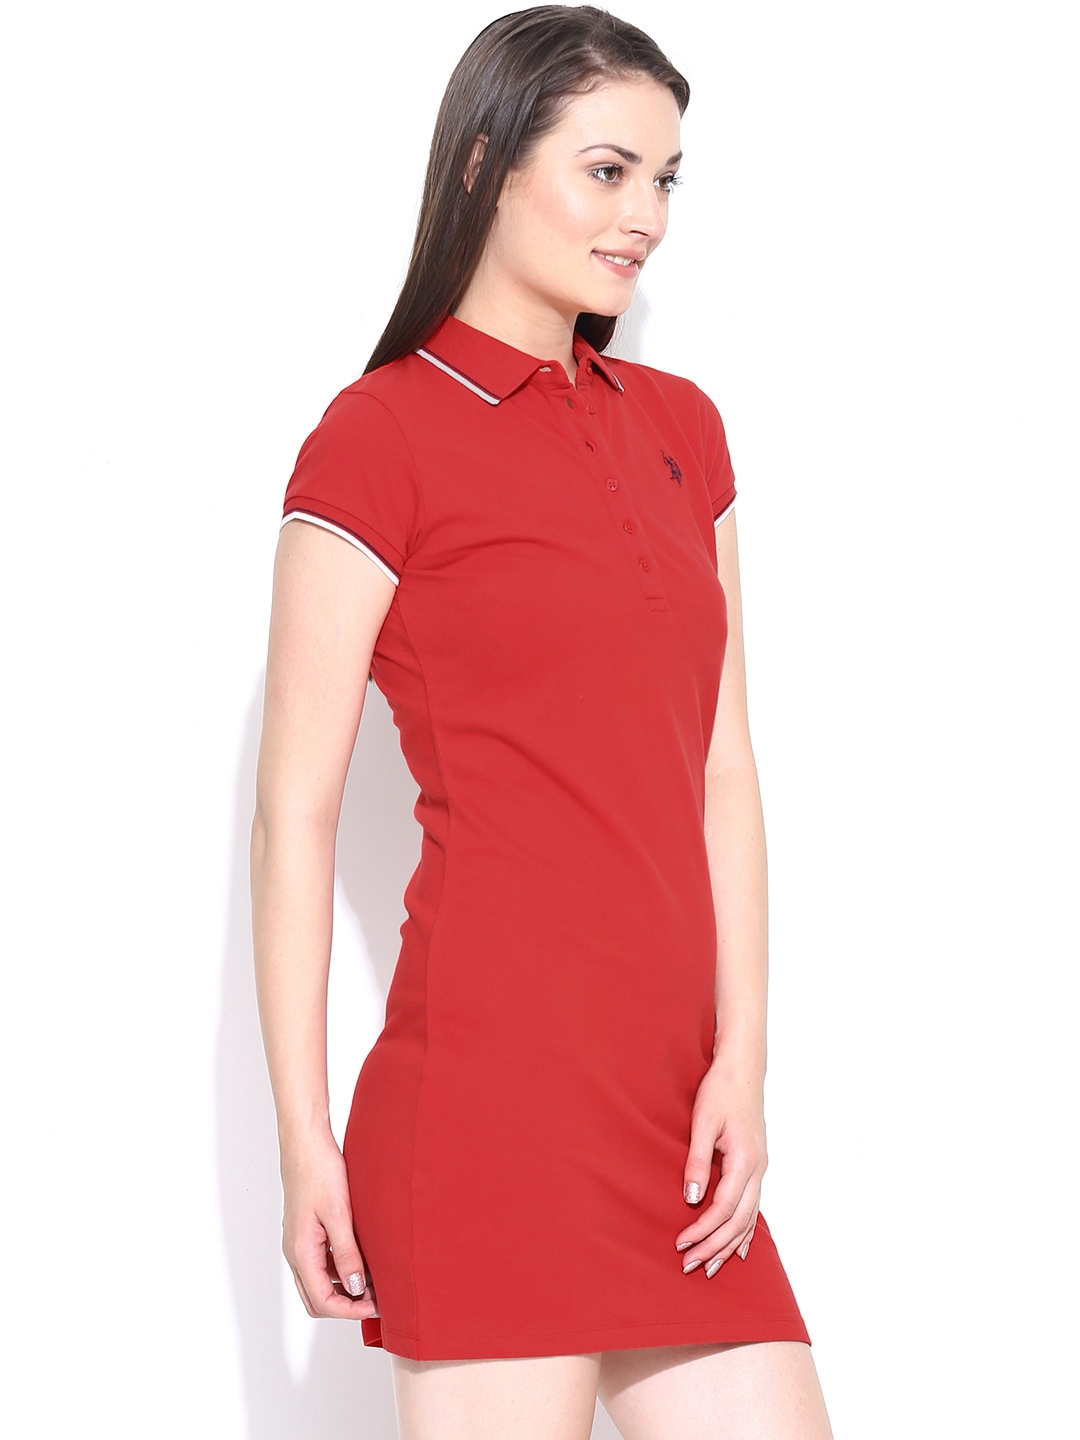 Polo Shirt Dresses